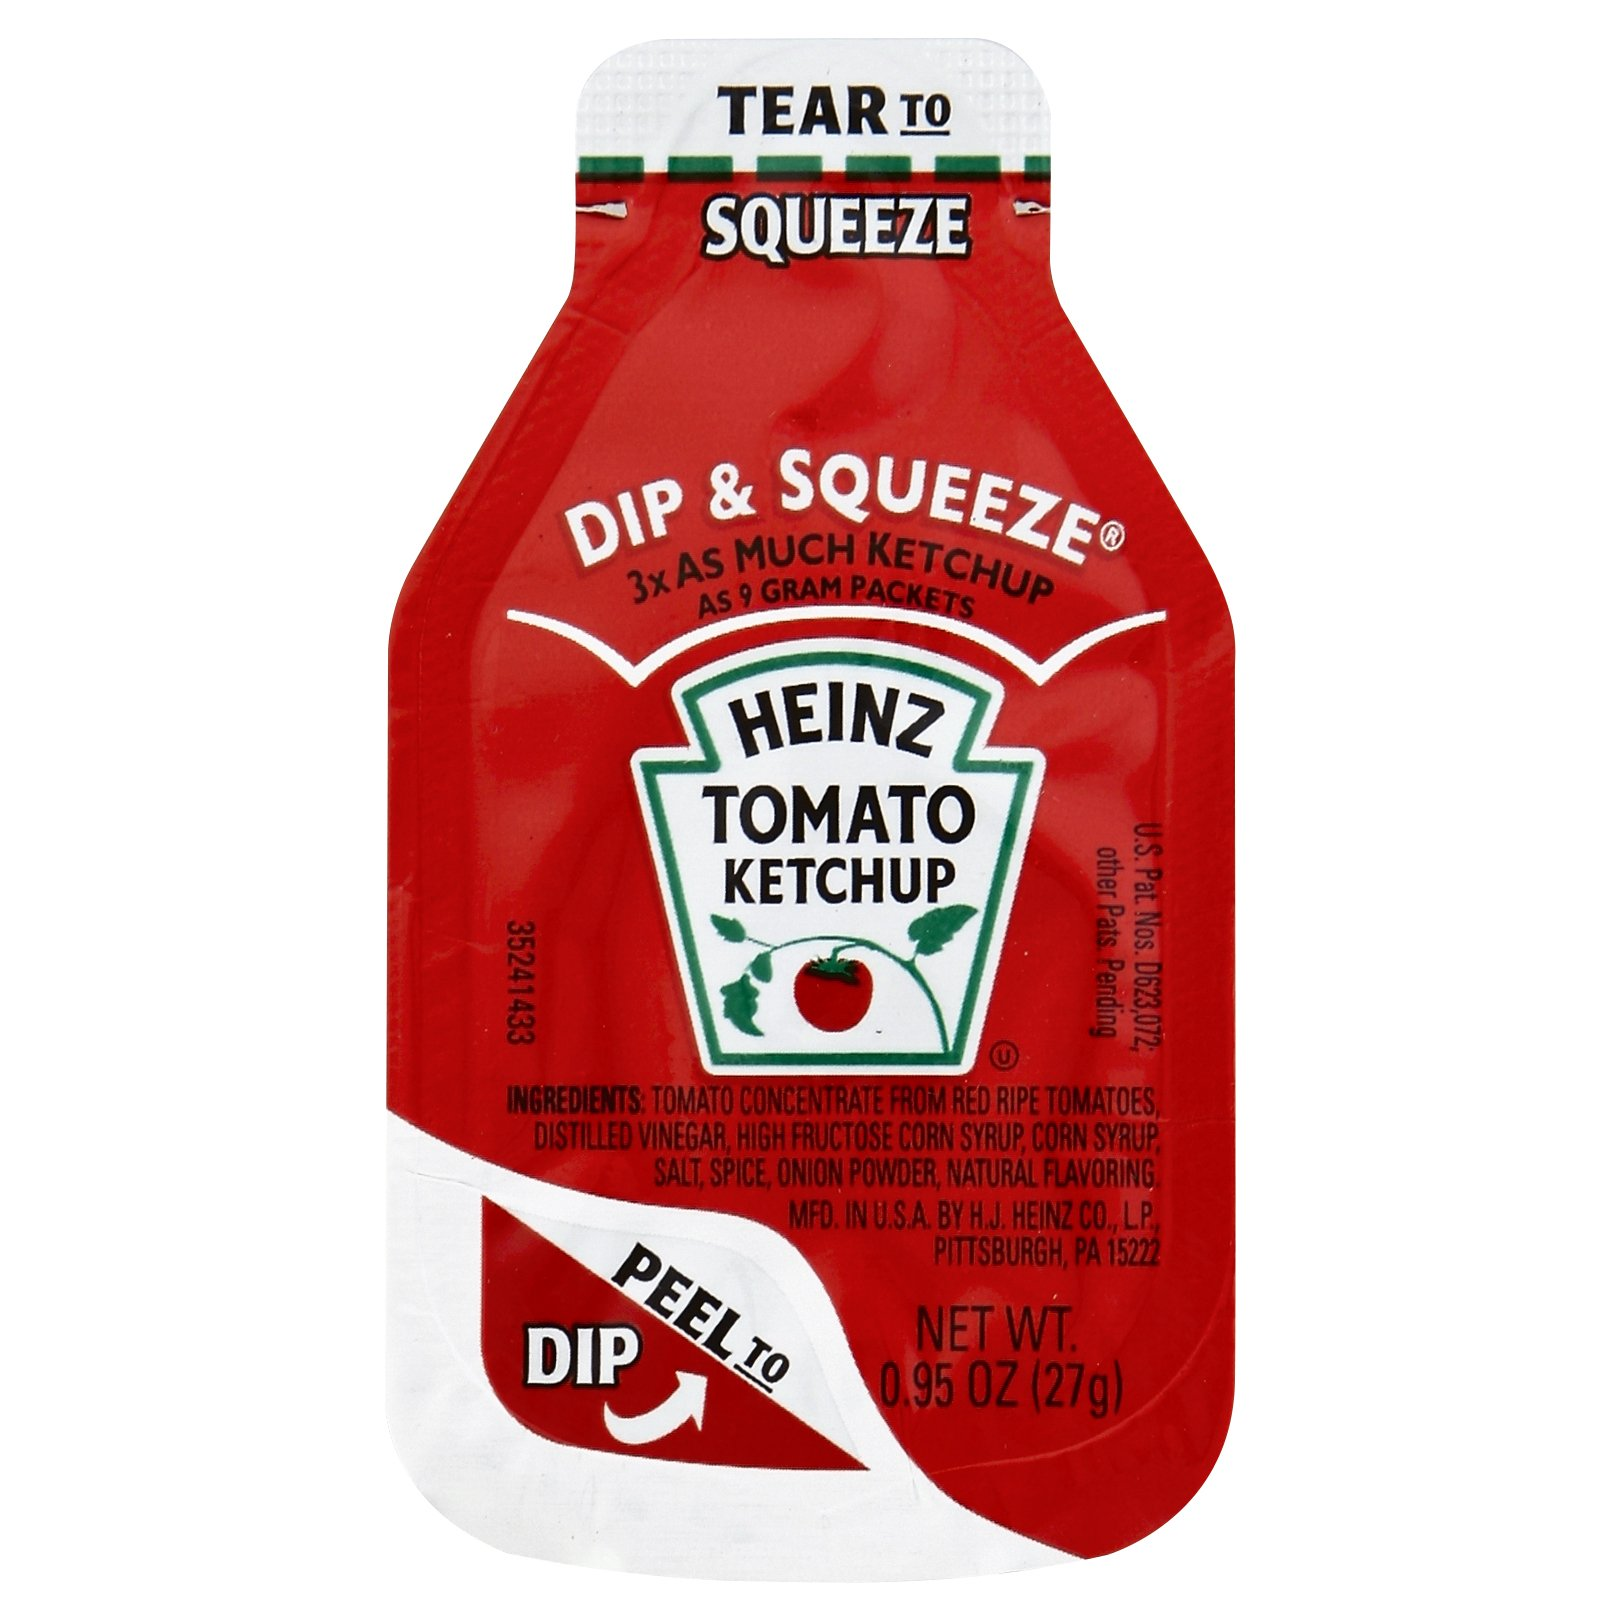 Heinz Ketchup Dip & Squeeze Packets (0.95 oz Packets, Pack of 500) by Heinz